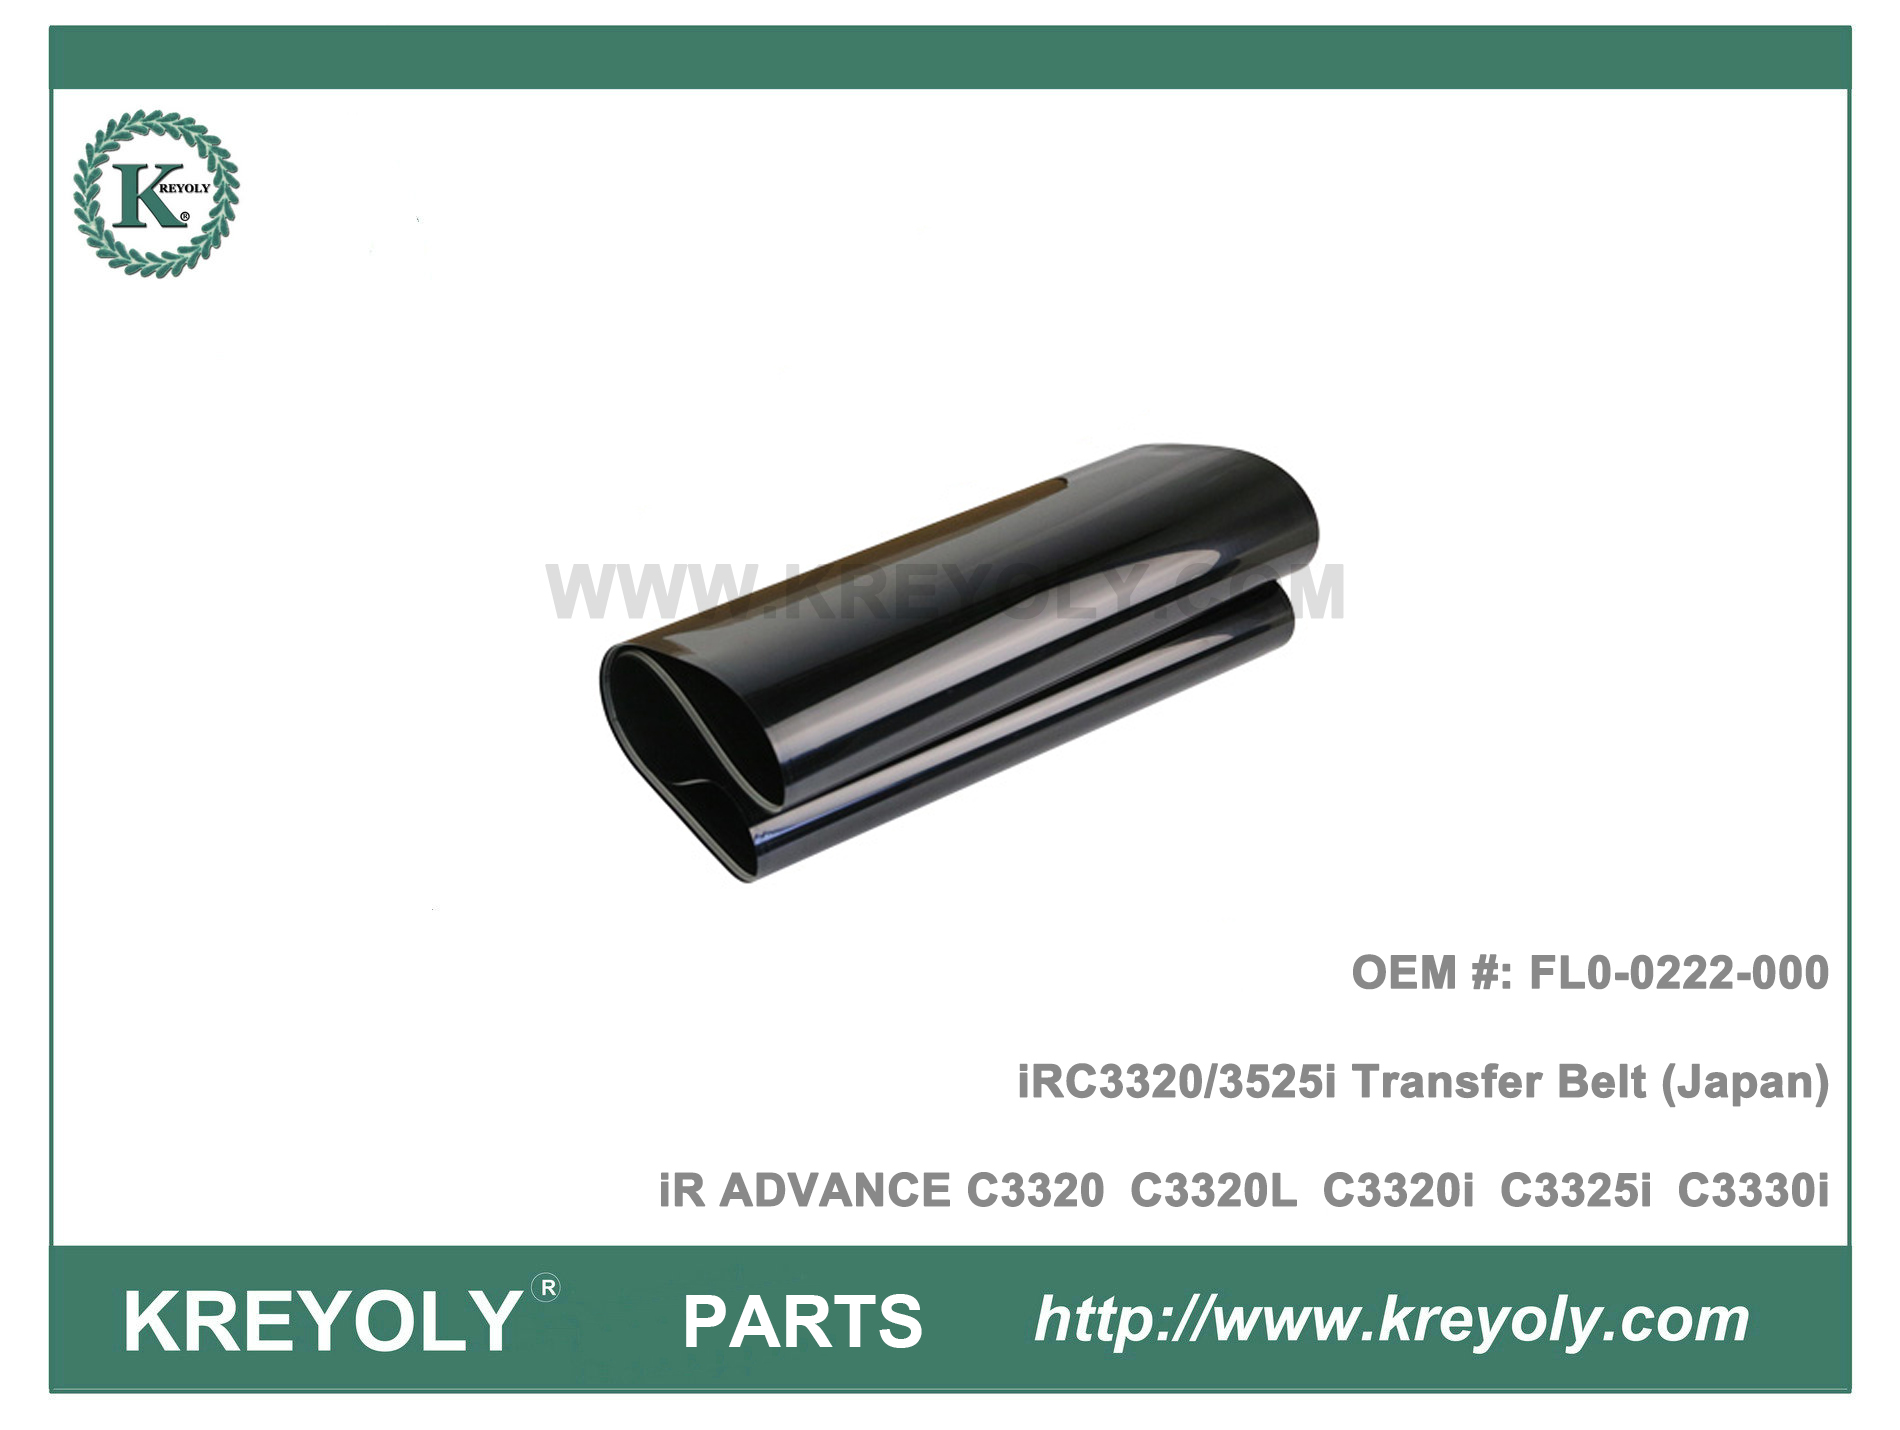 IBT FL0-0222-000 iR ADVANCE C3320 C3325 C3330 C3520 C3525 C3530 Transfer Belt (Japan)